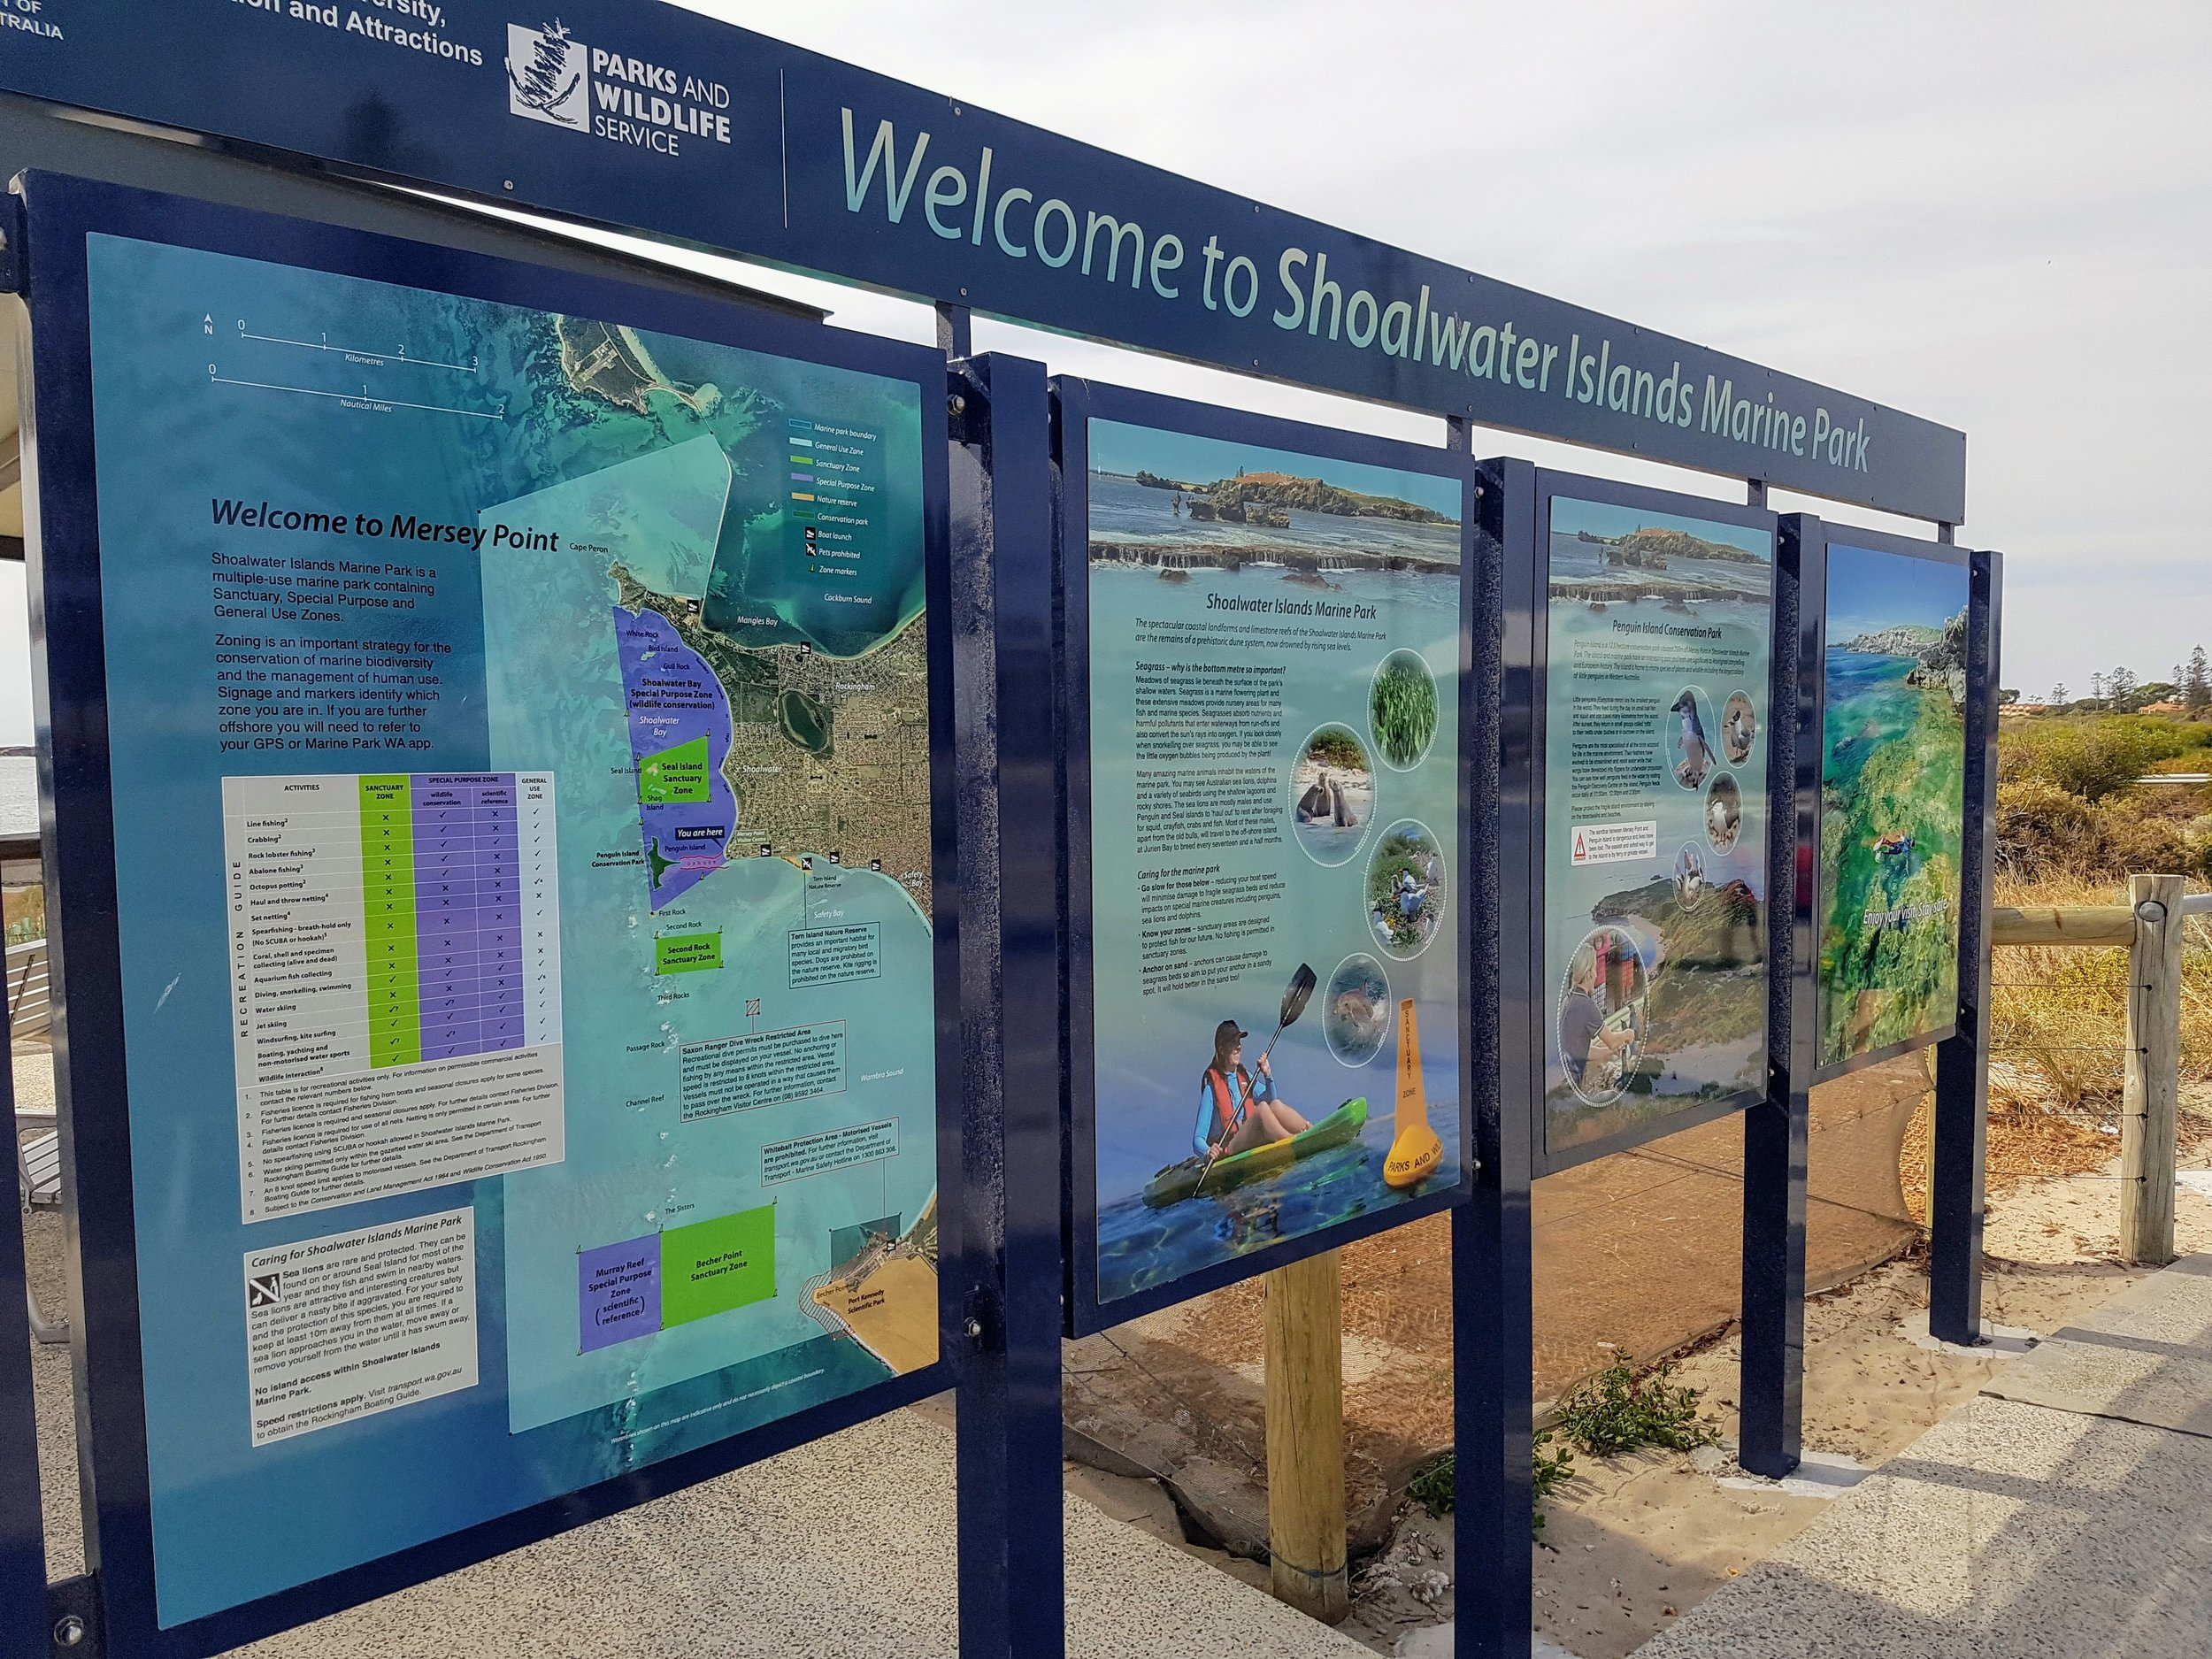 Great signage as you face the marine park.